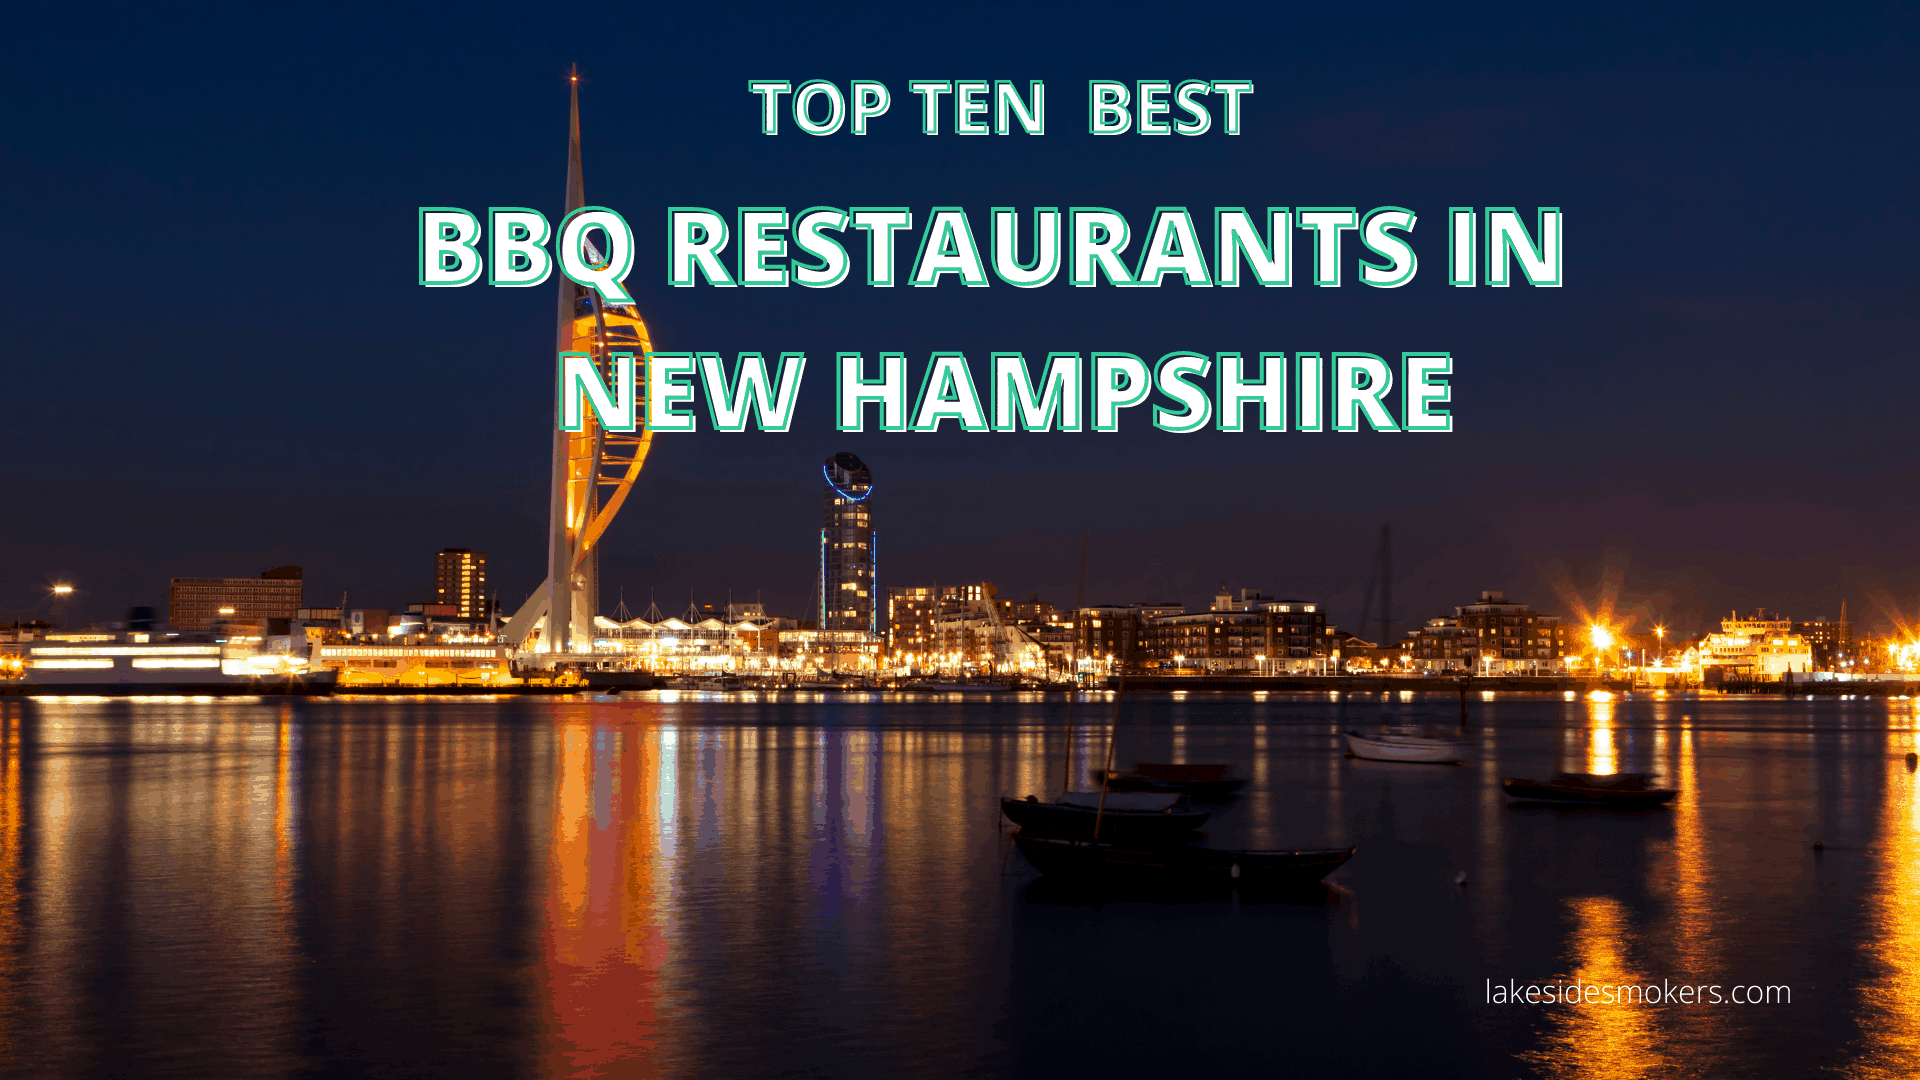 Top 10 best BBQ restaurants in New Hampshire [NH] worth a visit